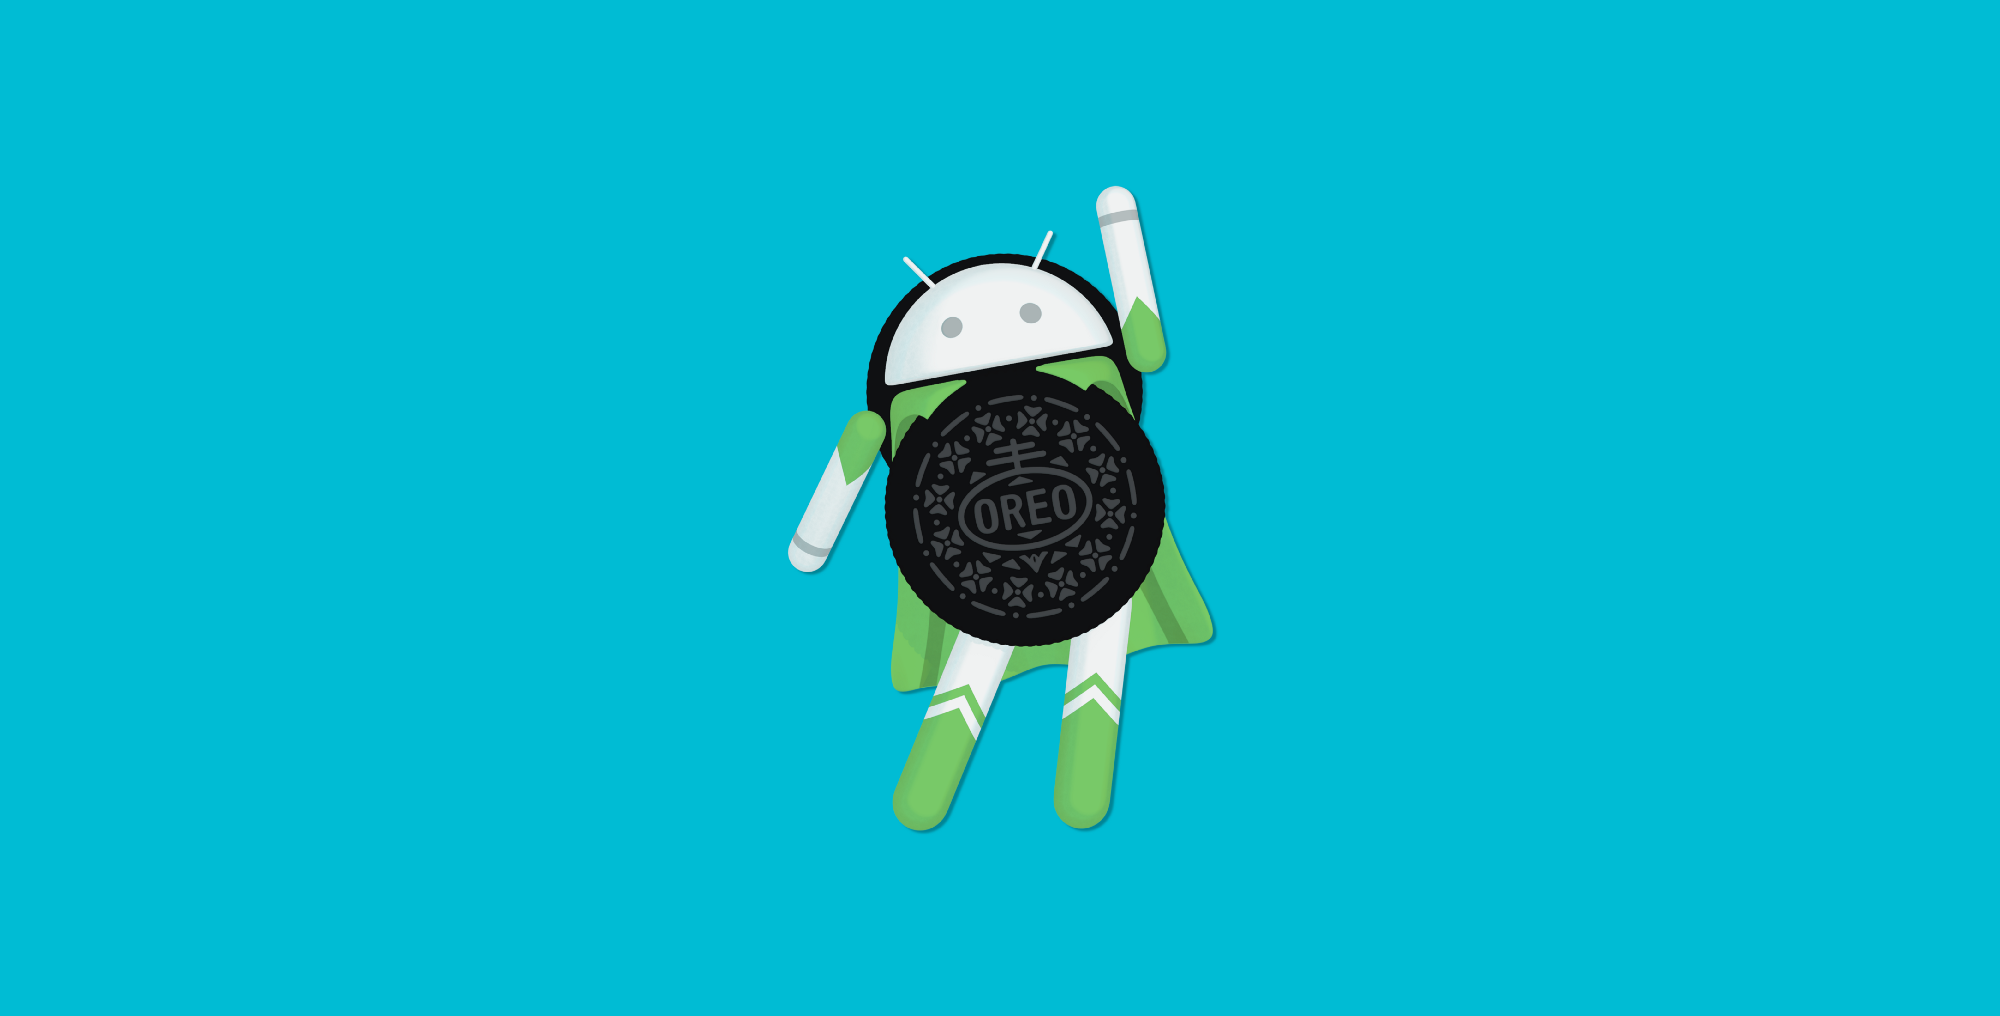 Handling background tasks in Android Oreo.